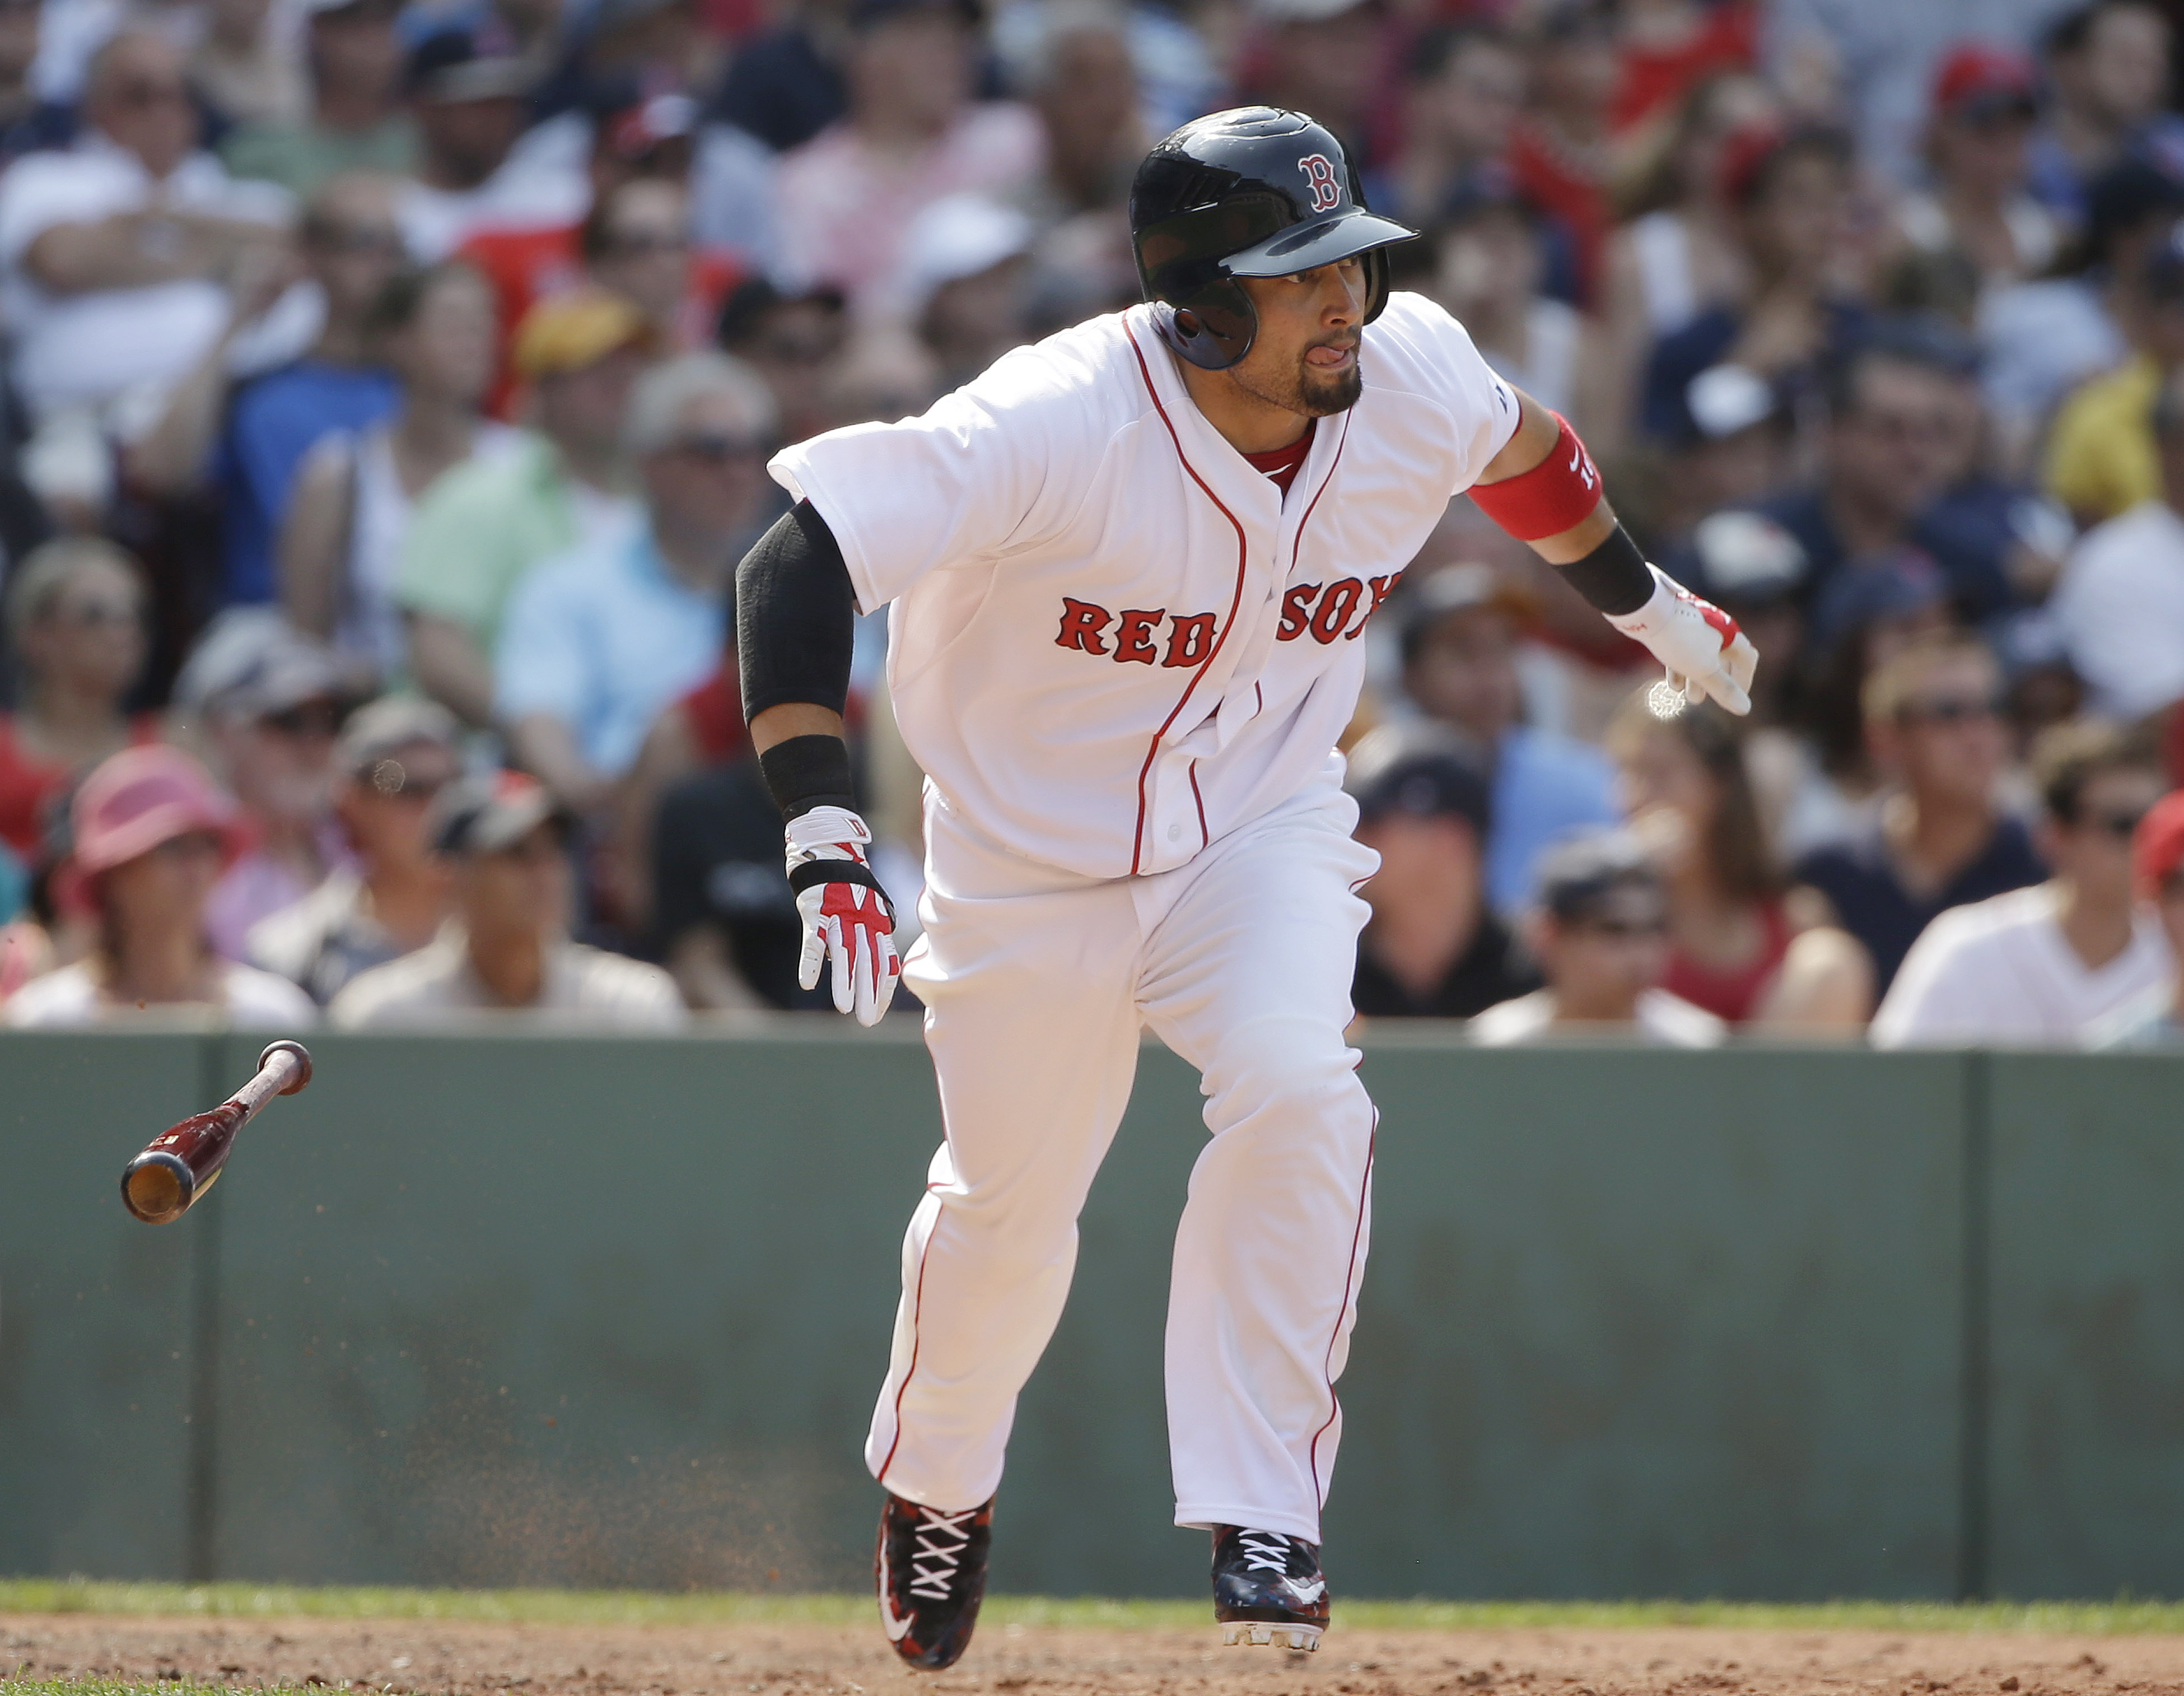 Boston Red Sox's Shane Victorino singles in the sixth inning of a baseball game against the New York Yankees at Fenway Park, Sunday, July 12, 2015, in Boston. (AP Photo/Steven Senne)